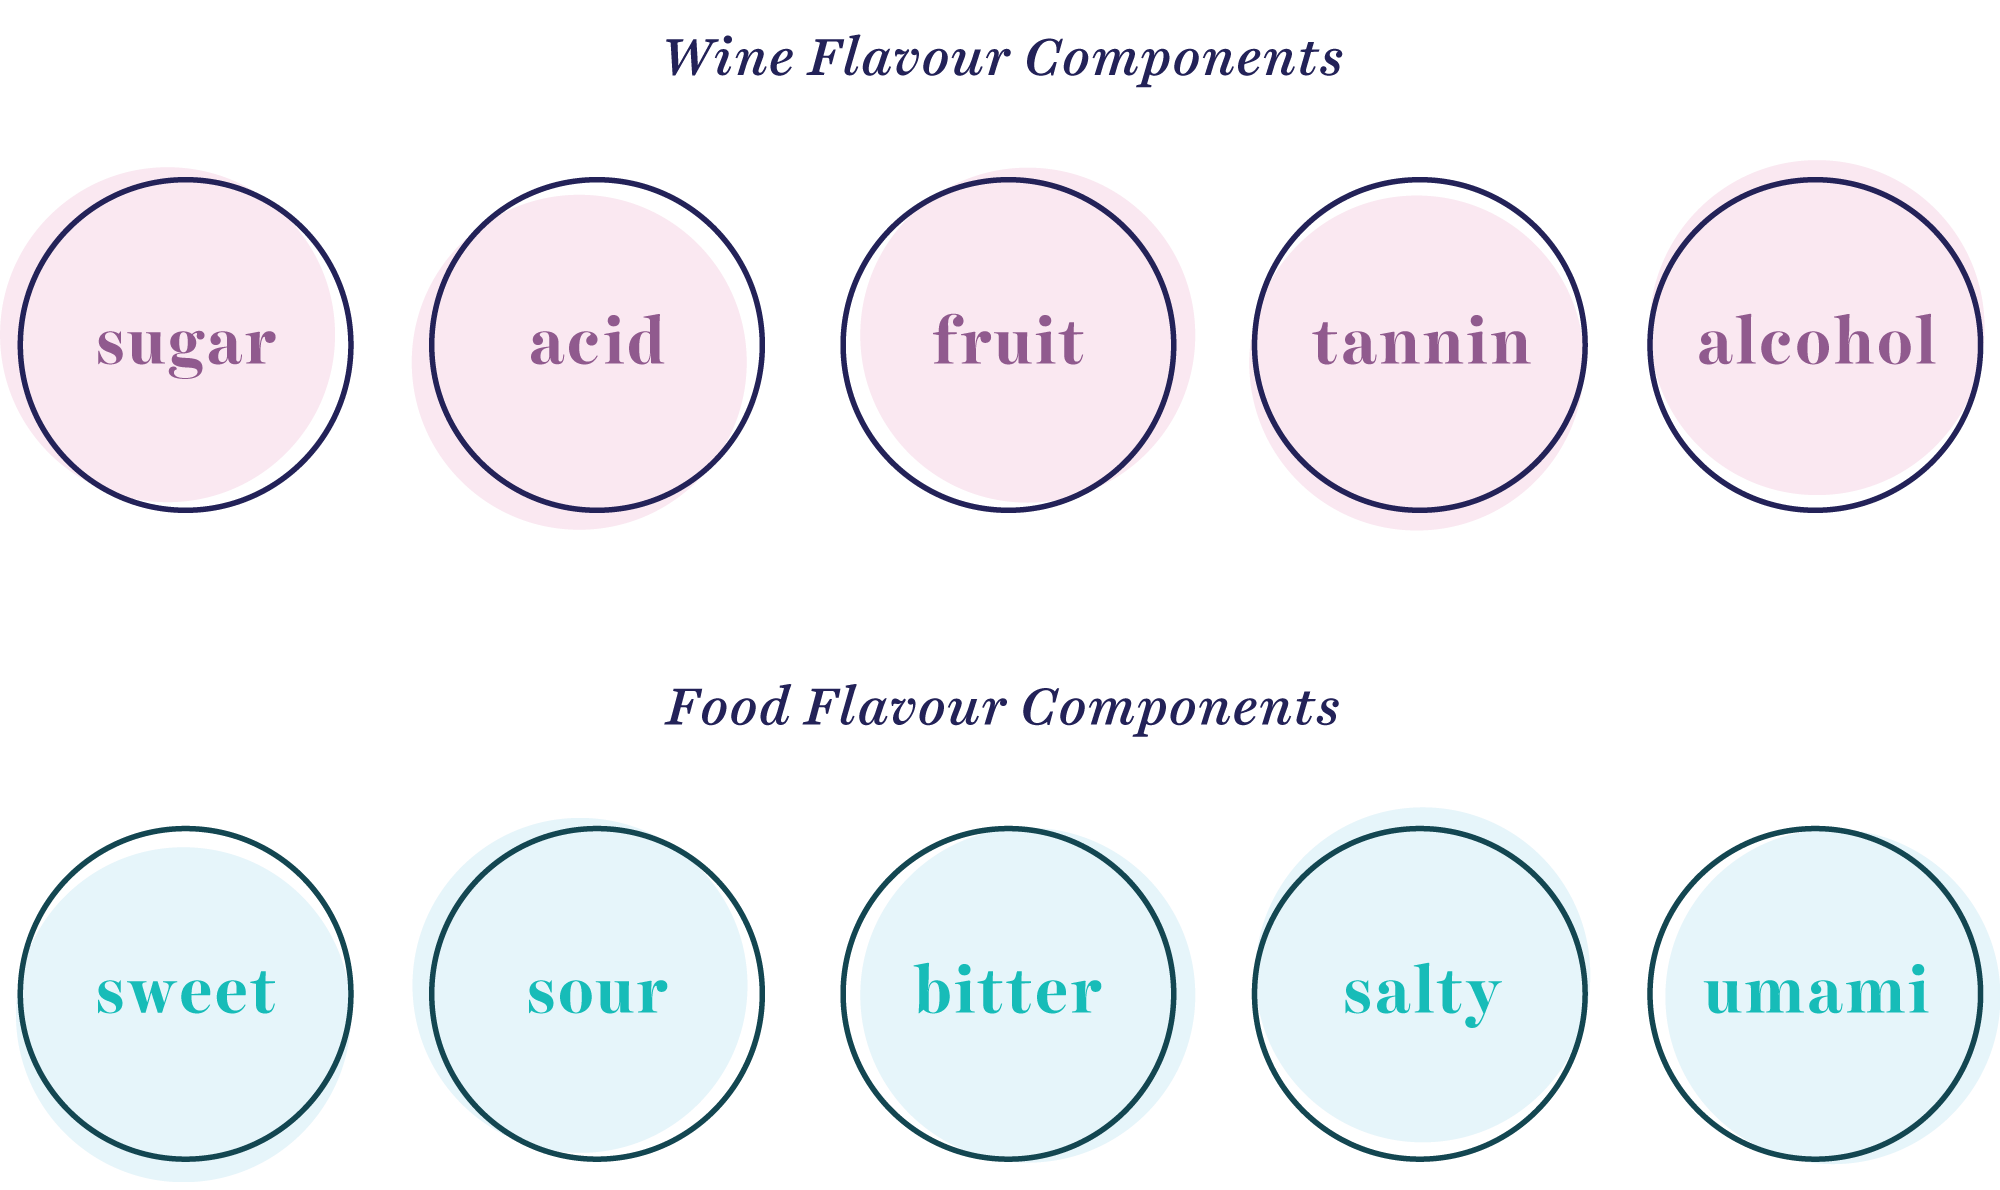 wine and food flavour components graphic